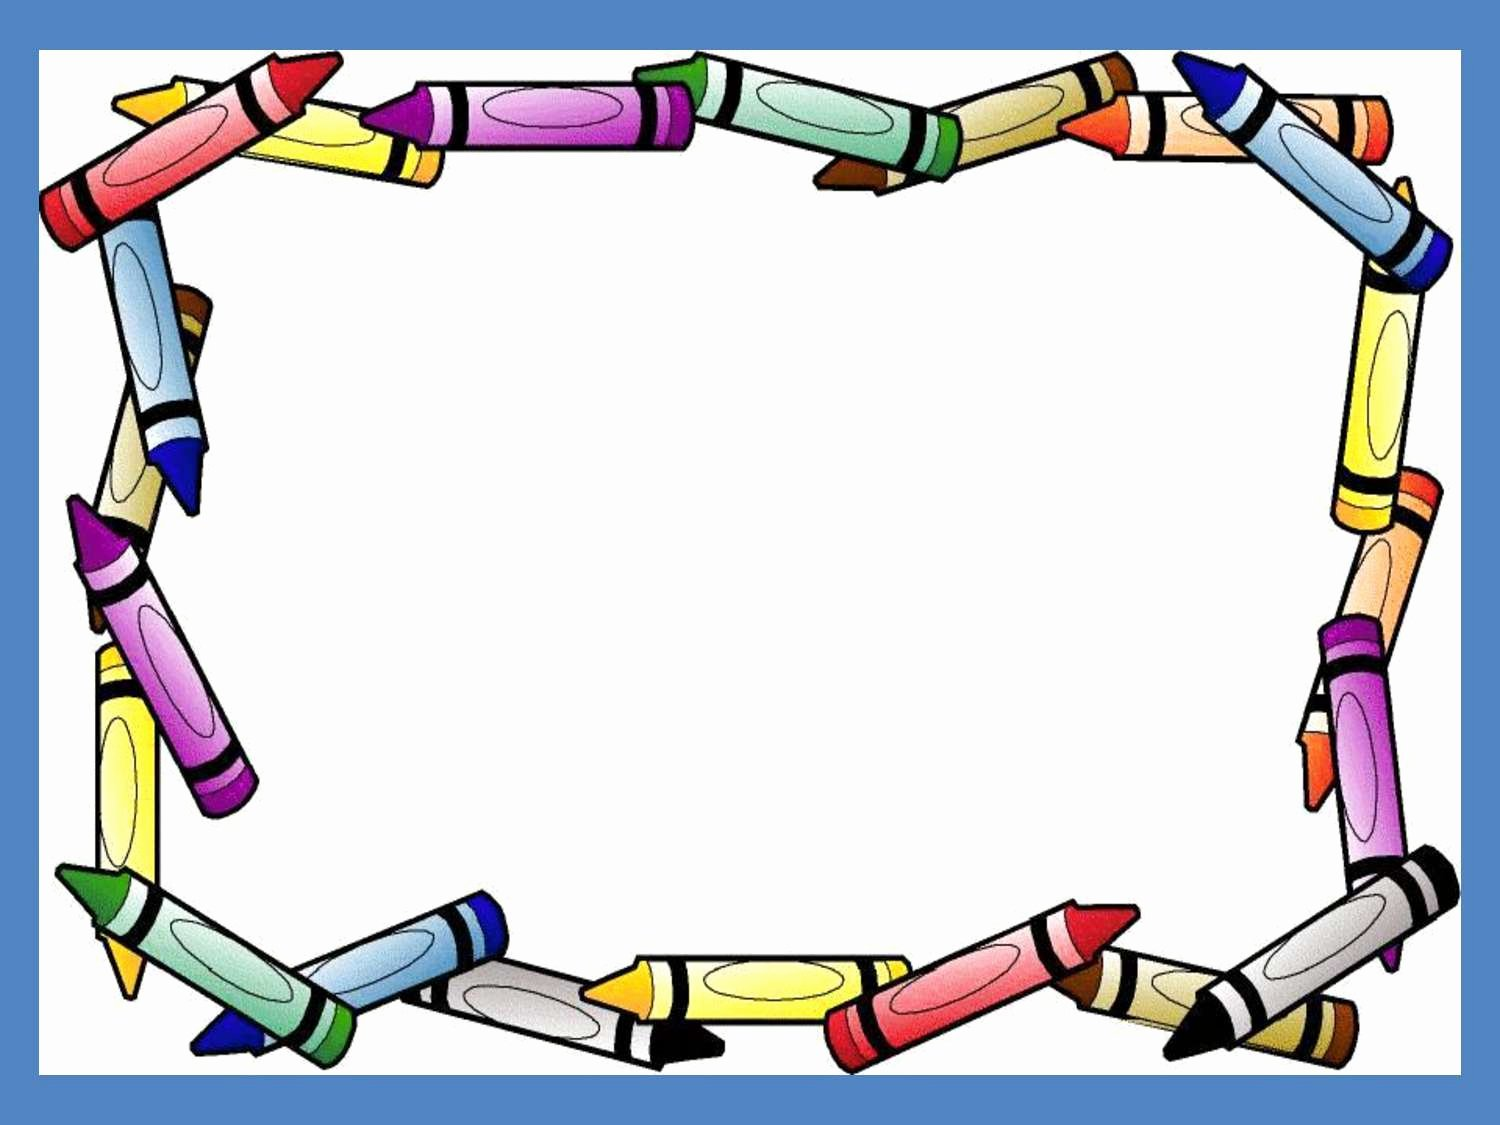 Free School Borders for Word Awesome School Border School theme Page Boarder Clipart 2